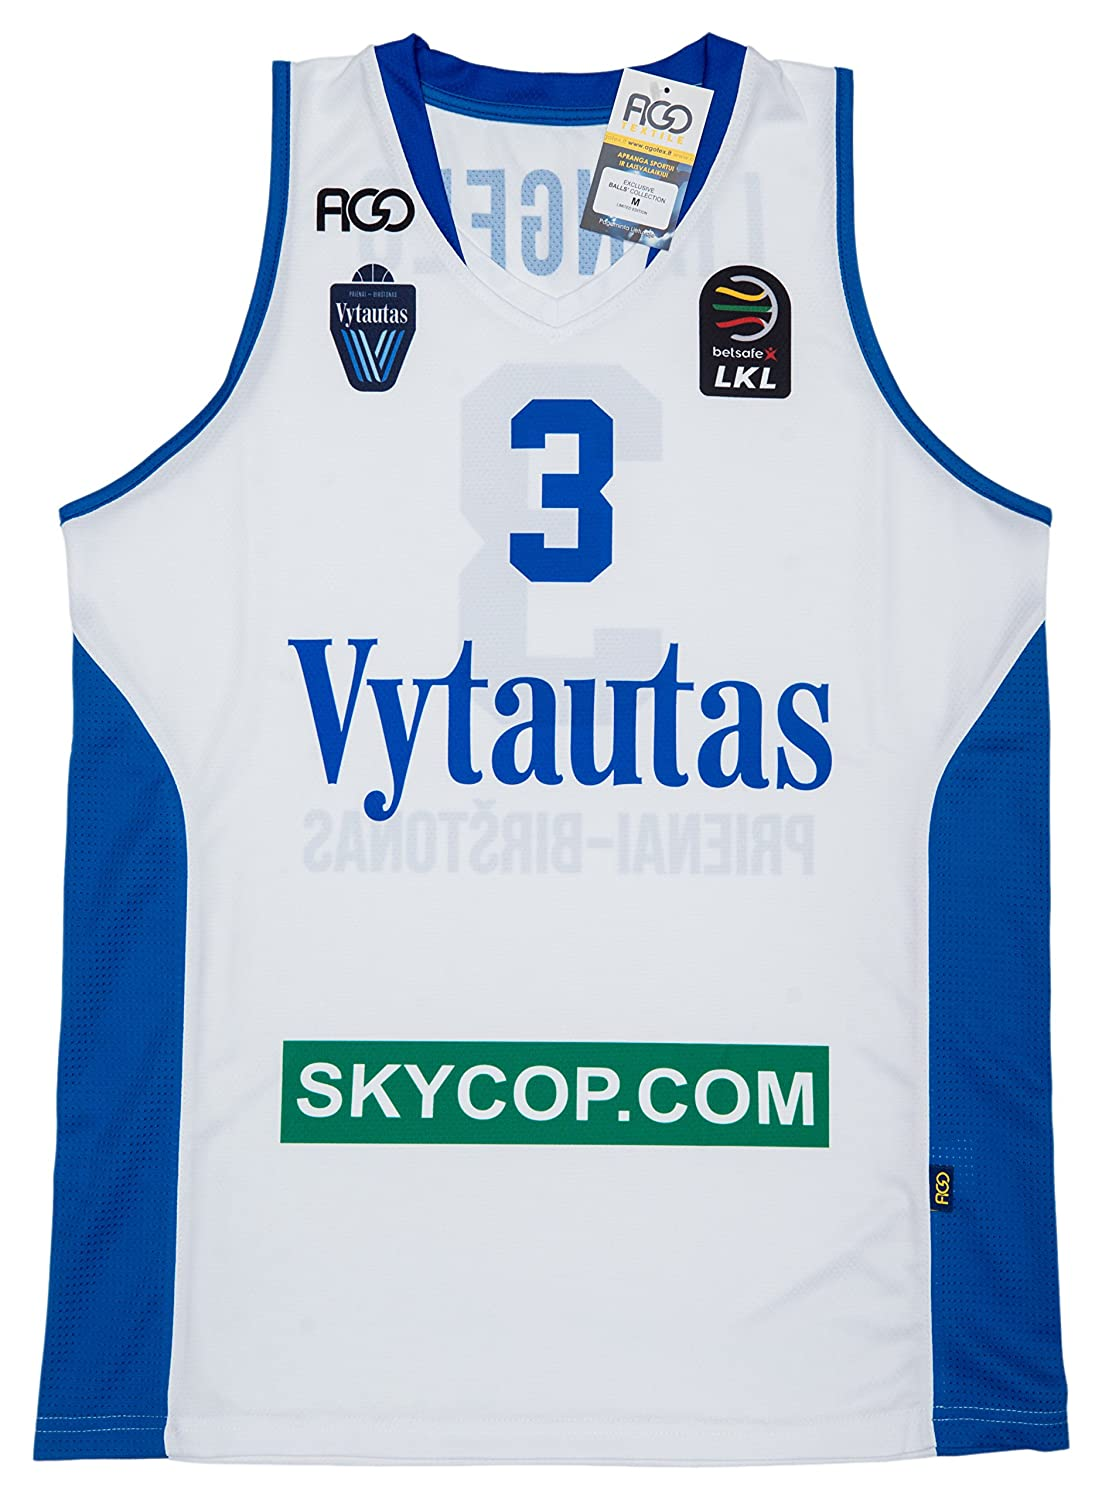 ce451a2fcb6d Amazon.com  Prienų-Birštono Vytautas LaMelo and LiAngelo Ball Original Team  Jersey  Sports   Outdoors